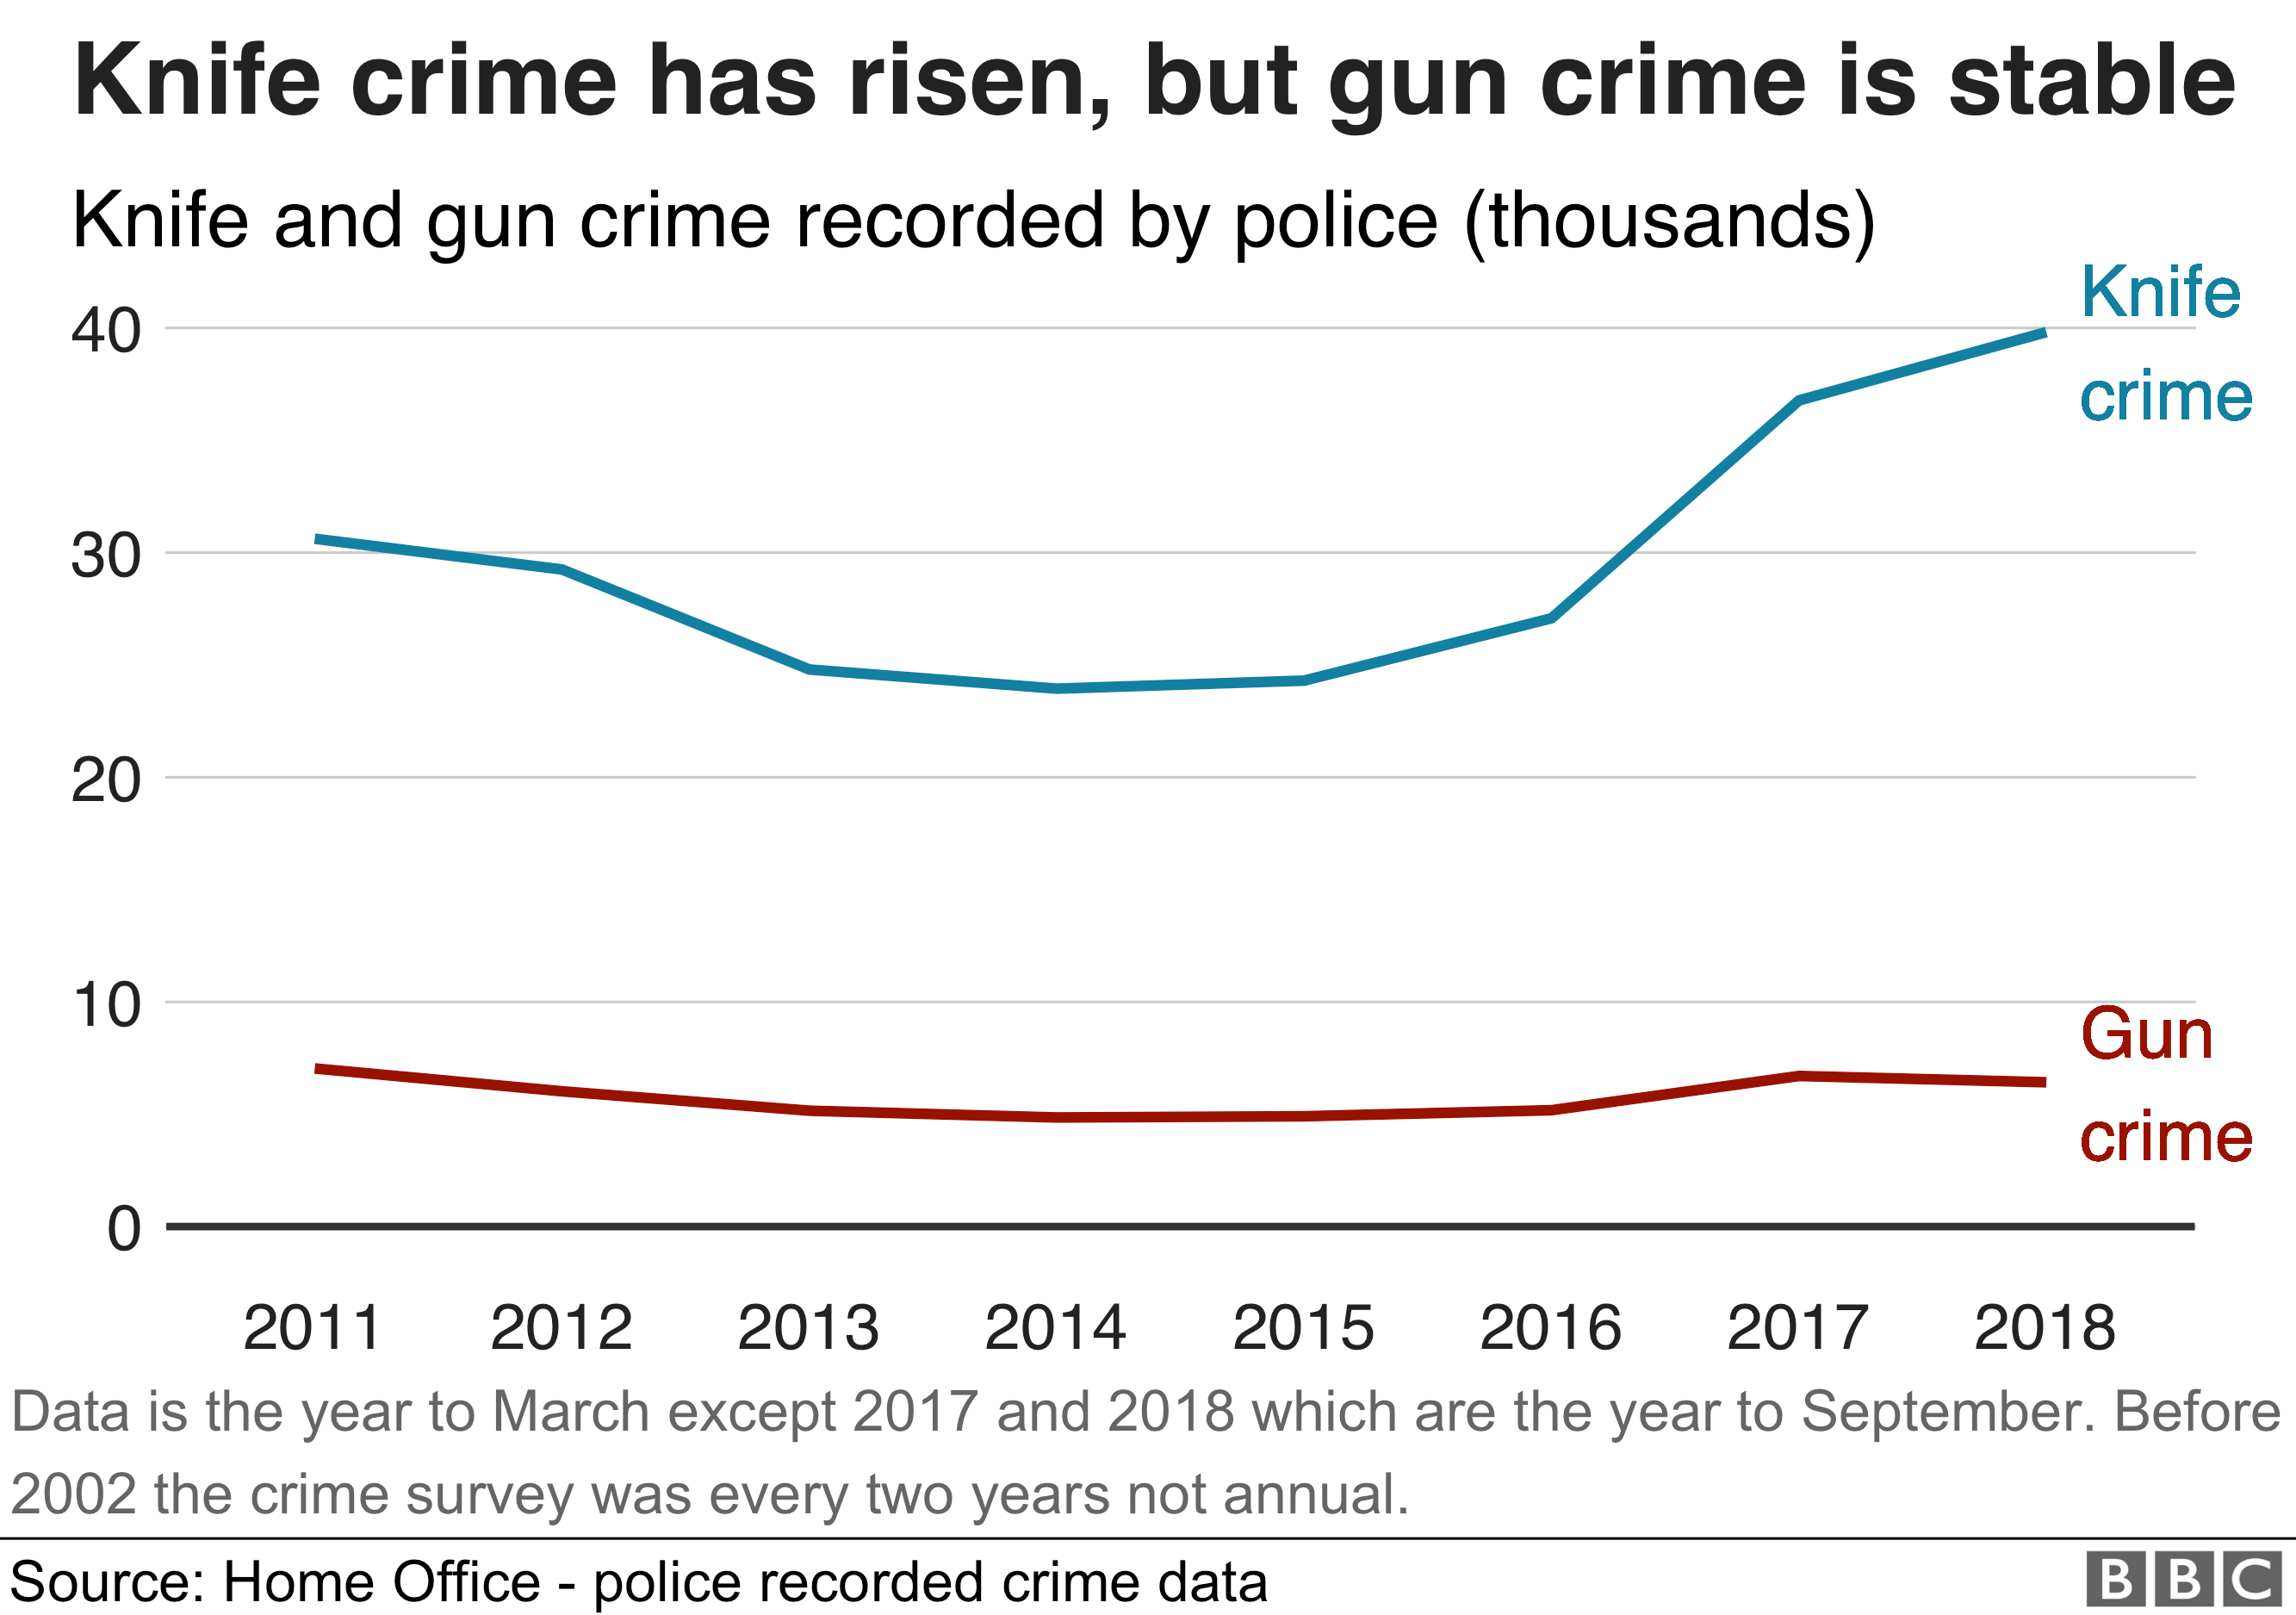 A chart showing the rise in knife crime